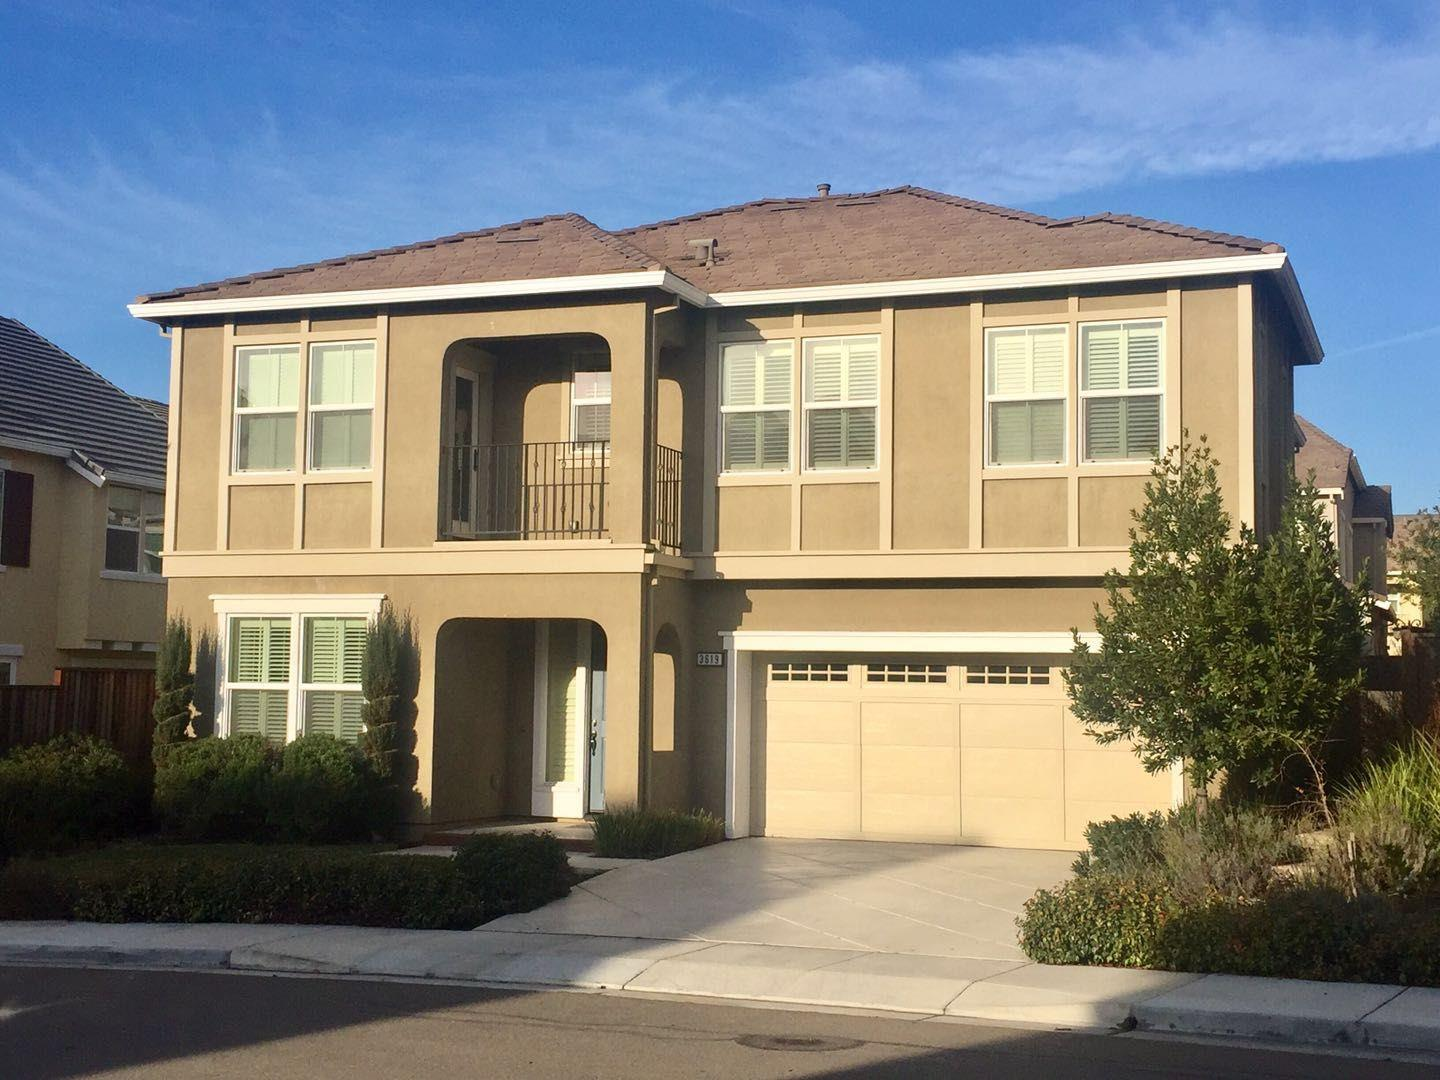 Single Family Home for Sale at 3619 Mccormick Court 3619 Mccormick Court Dublin, California 94568 United States